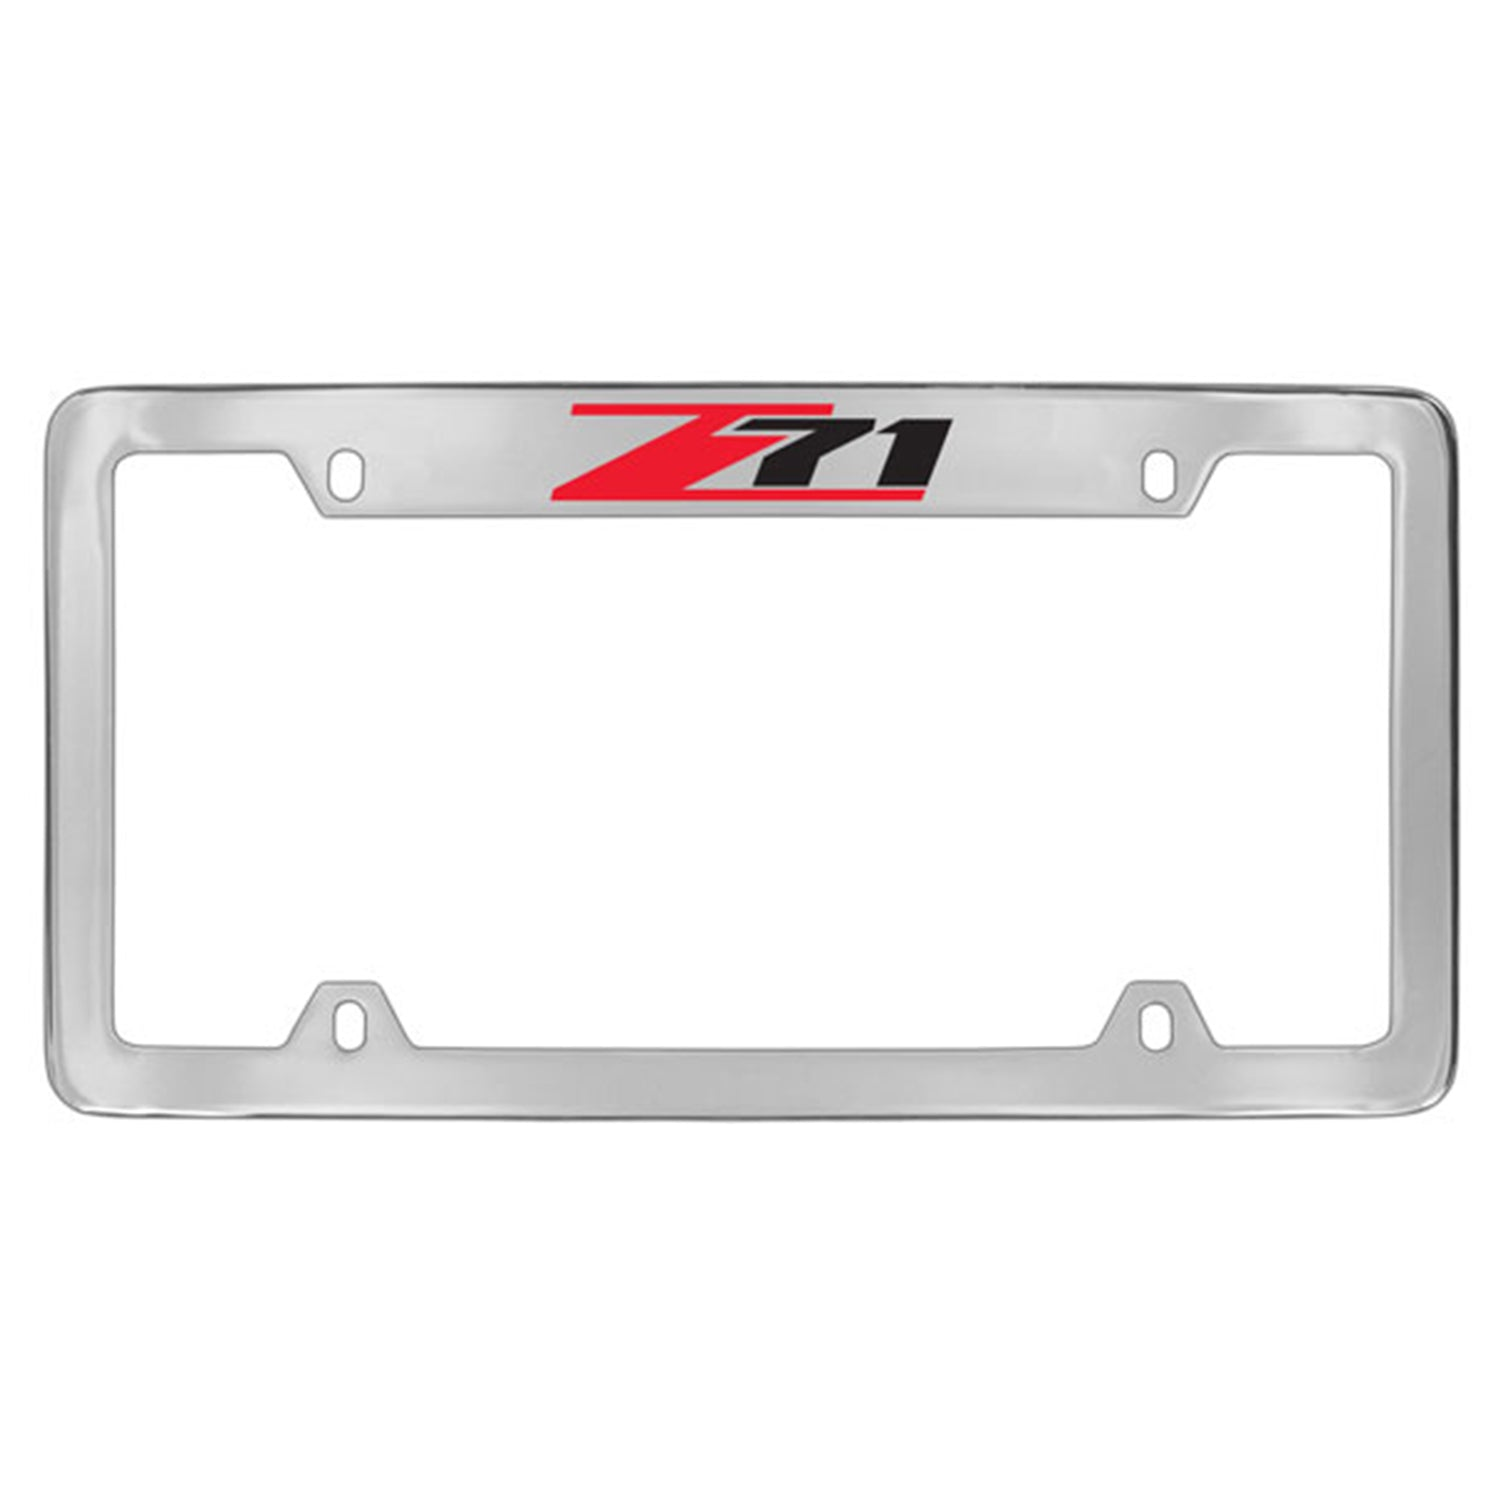 Chevy Z71 License Plate Frame With Holes 4 Holes (Chrome) - Custom Werks